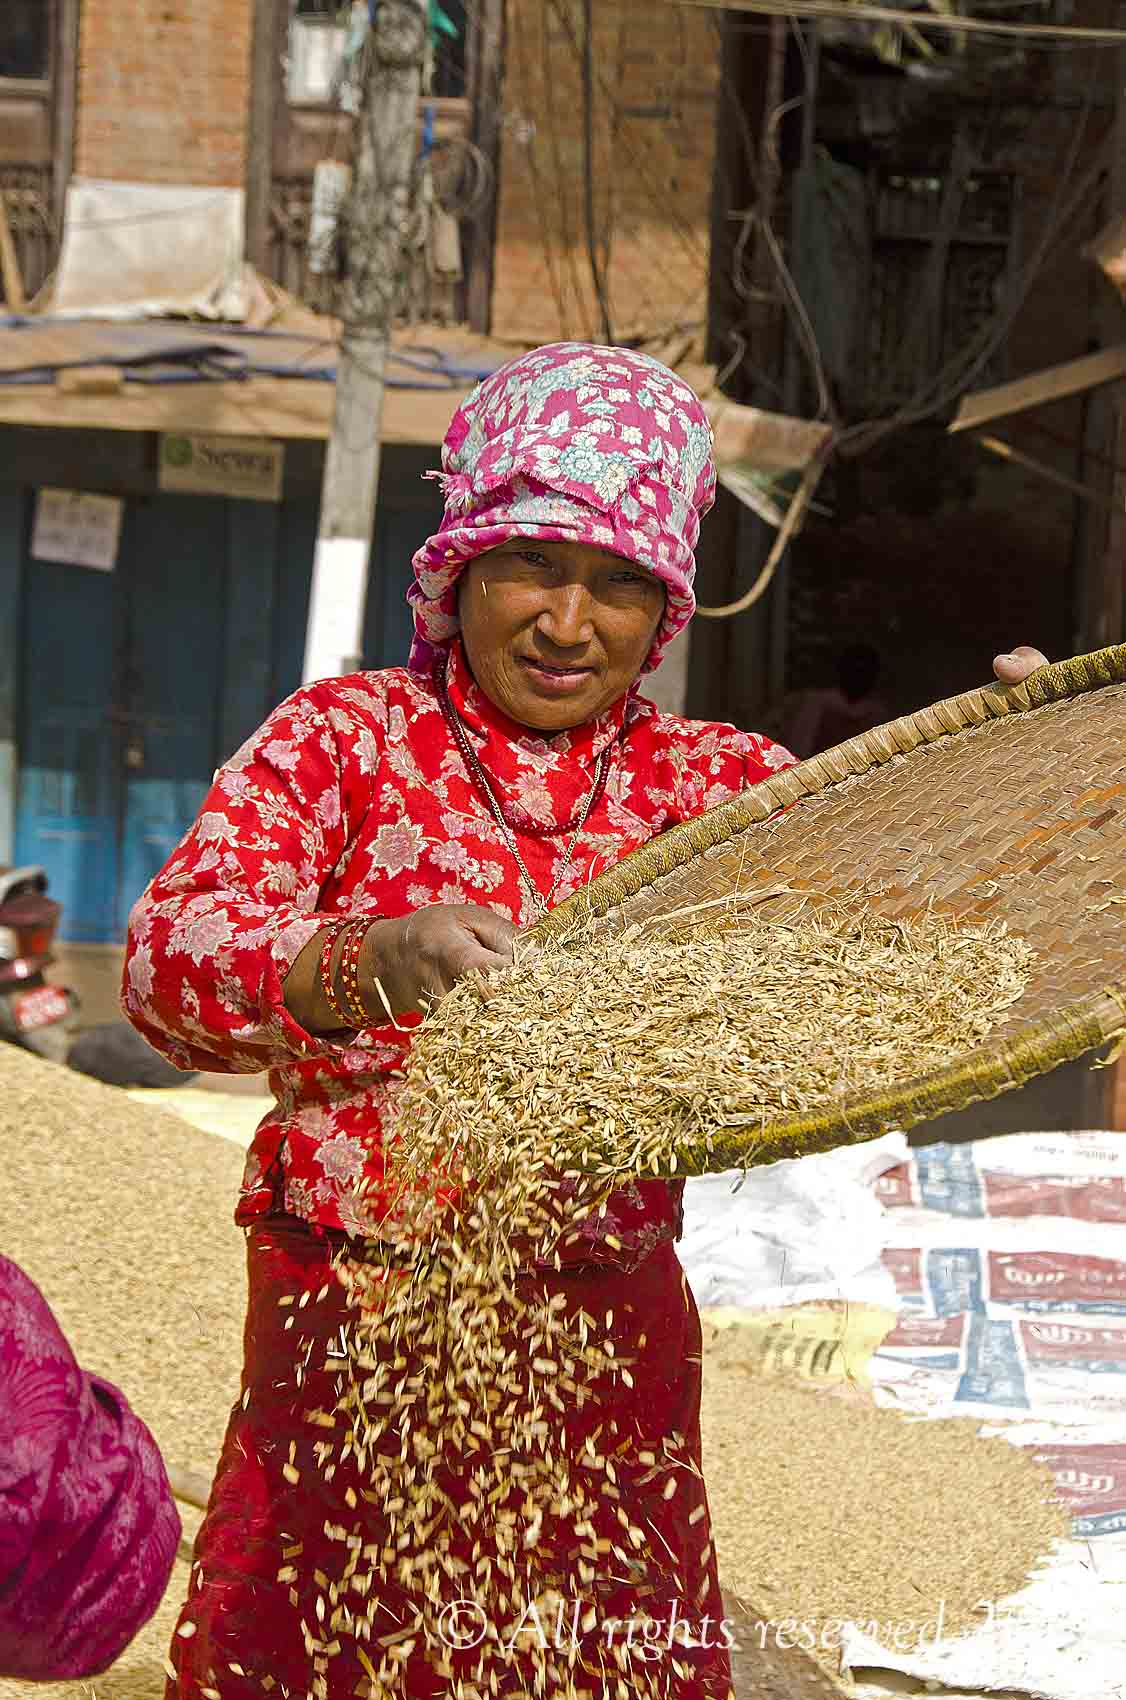 Anyone been up to Nepal  recently?-thrashing-rice-jpg